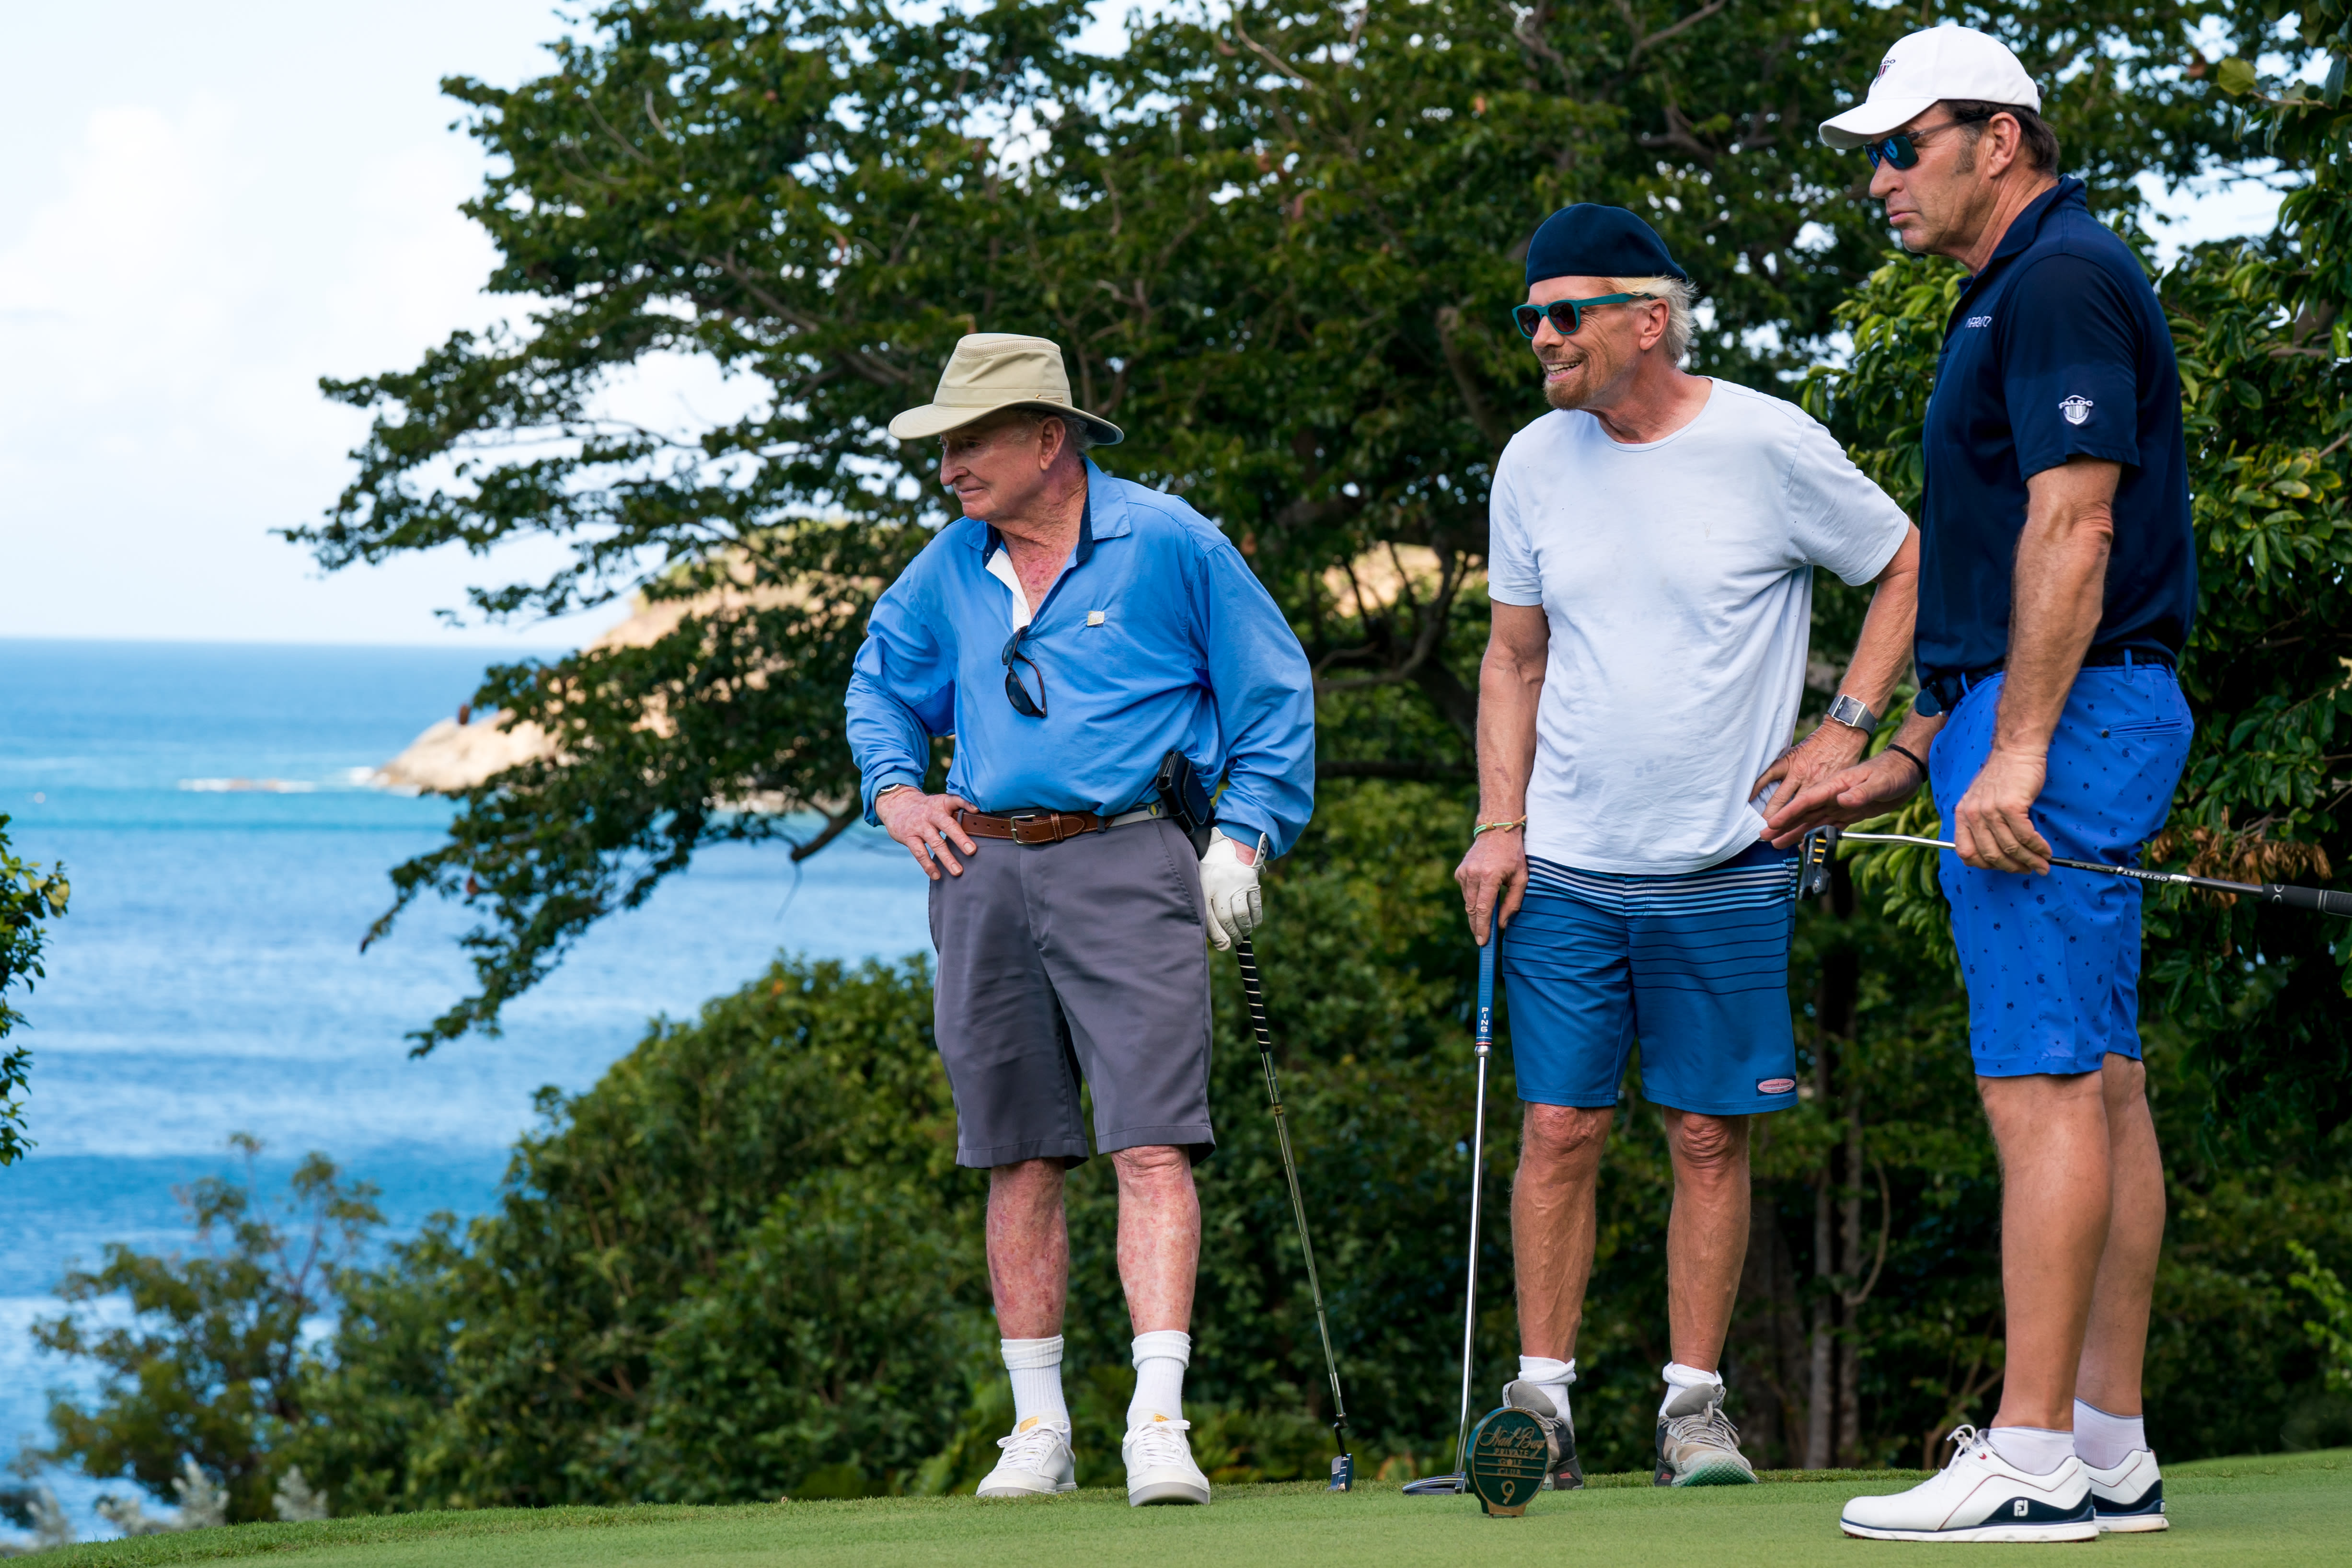 Richard Branson with Rod Laver and Nick Faldo